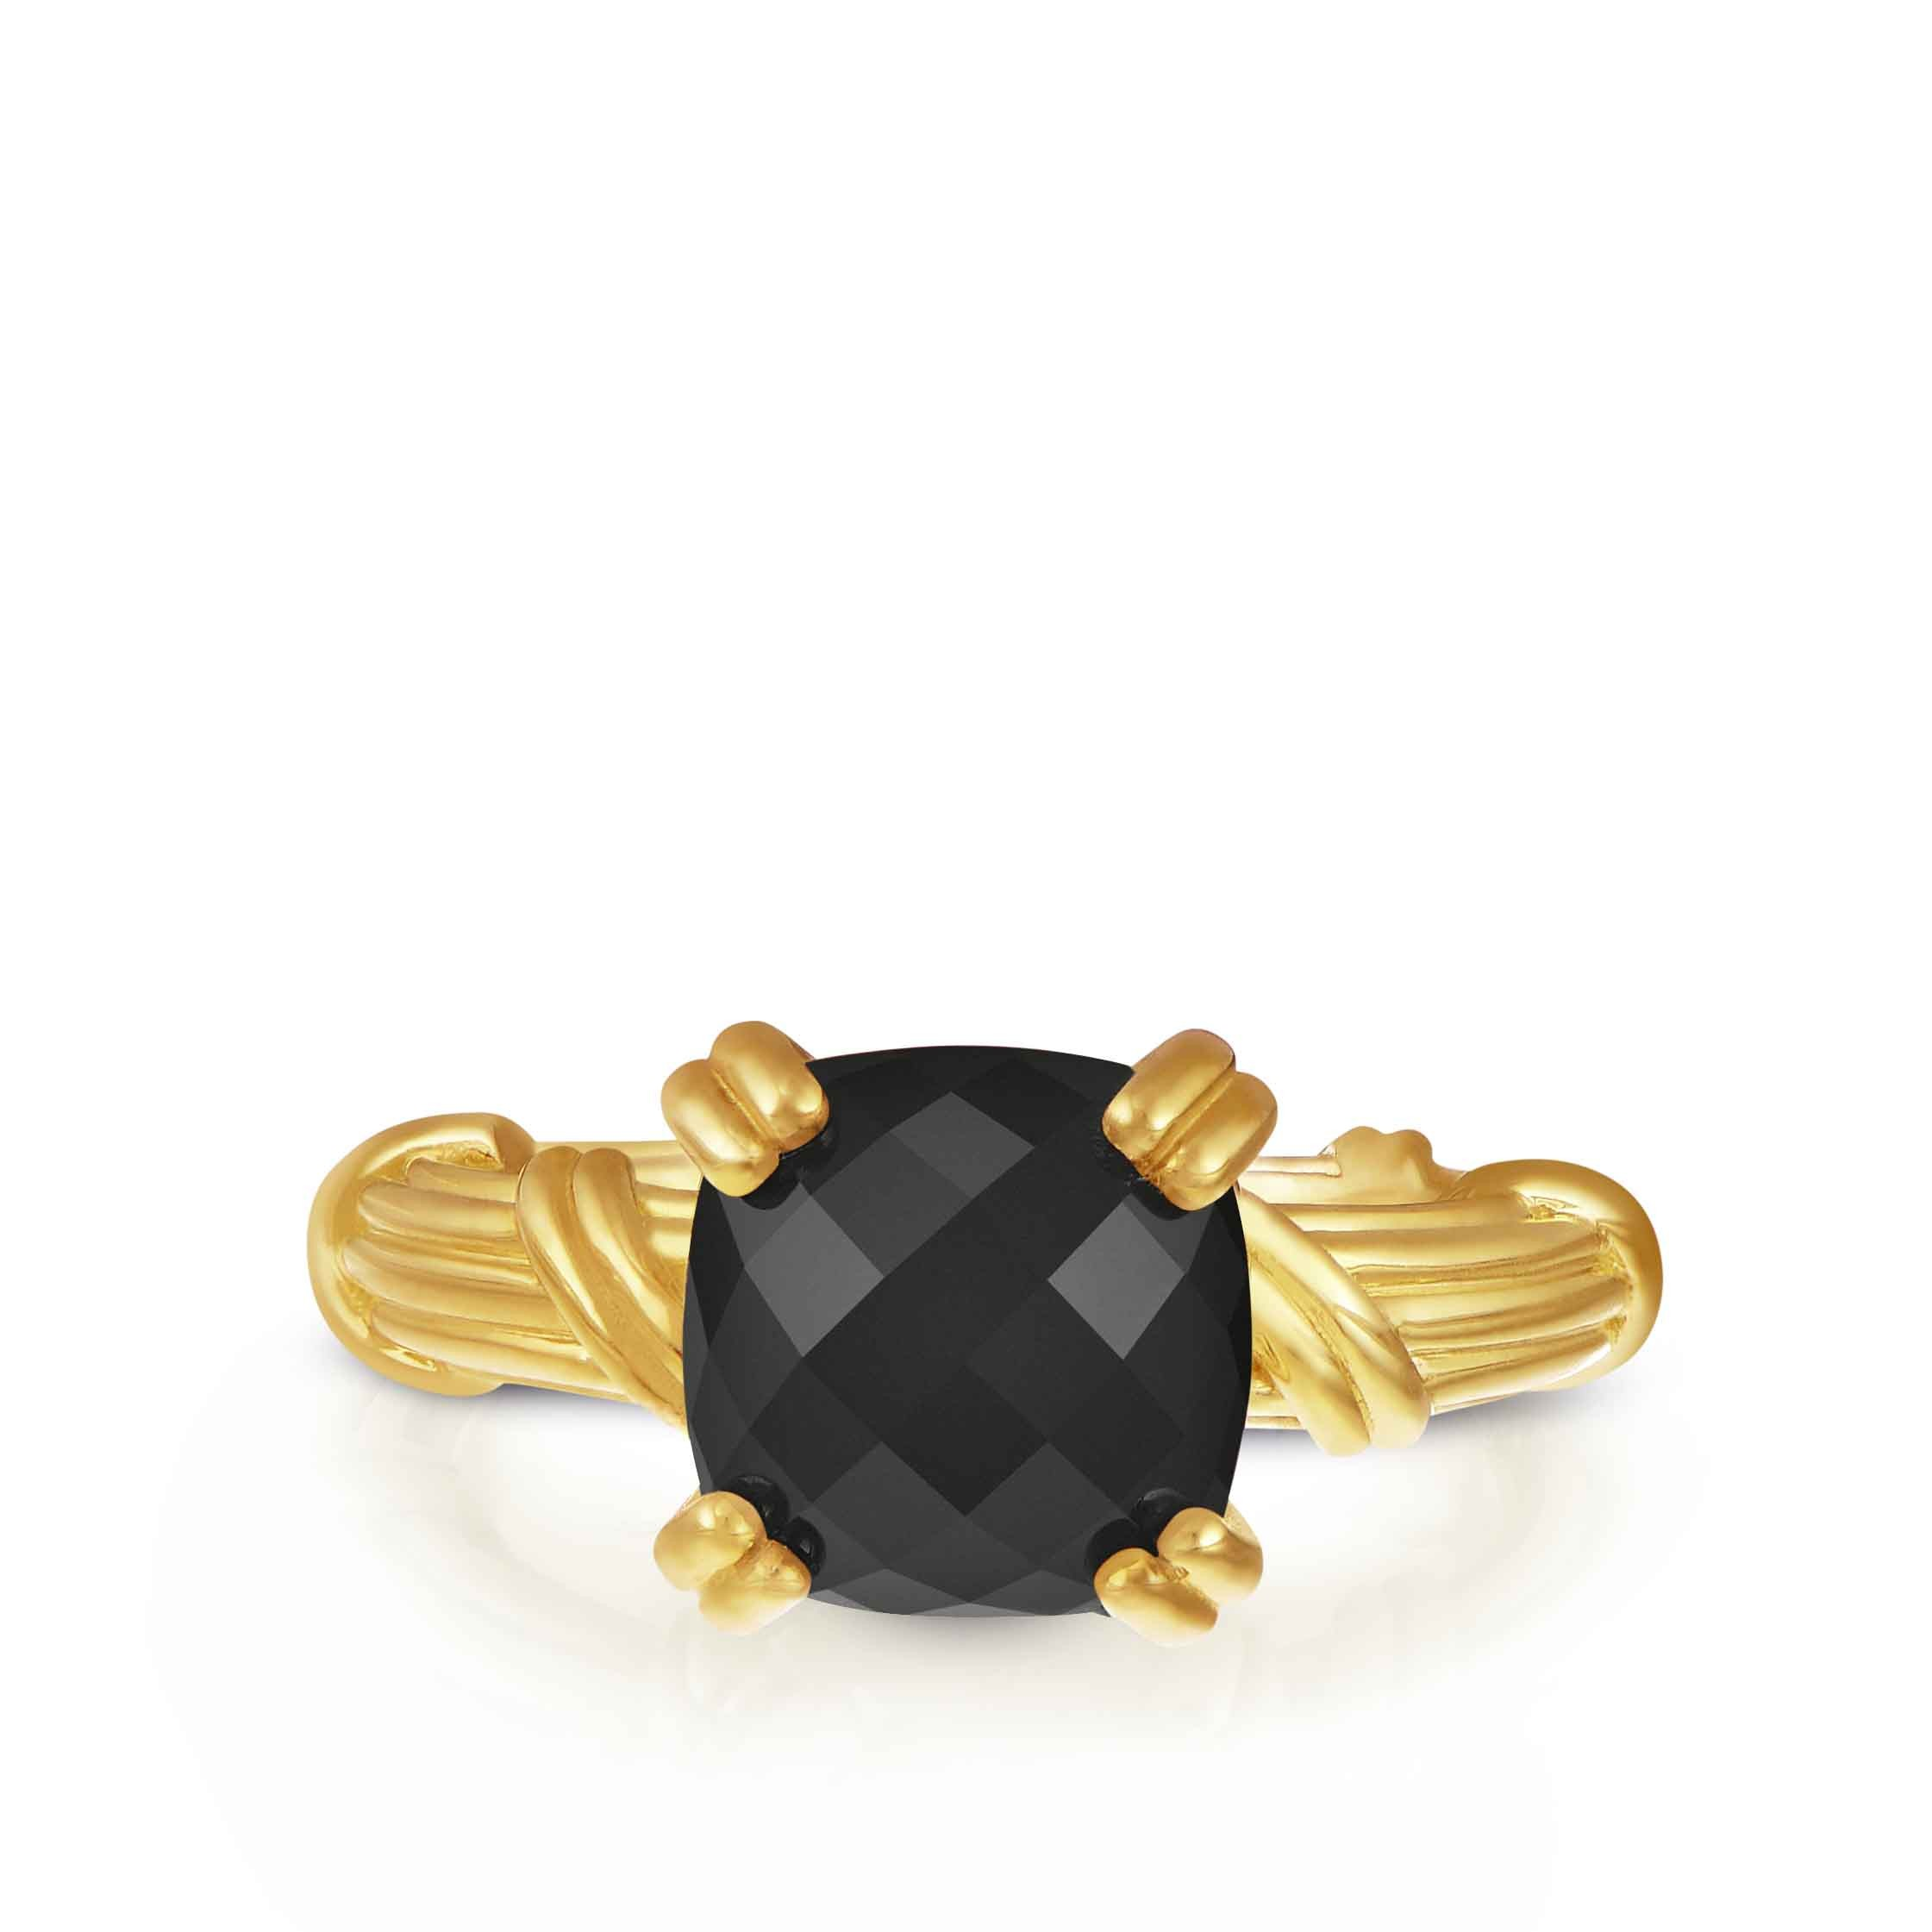 Fantasies Black Onyx Cocktail Ring in 18K yellow gold